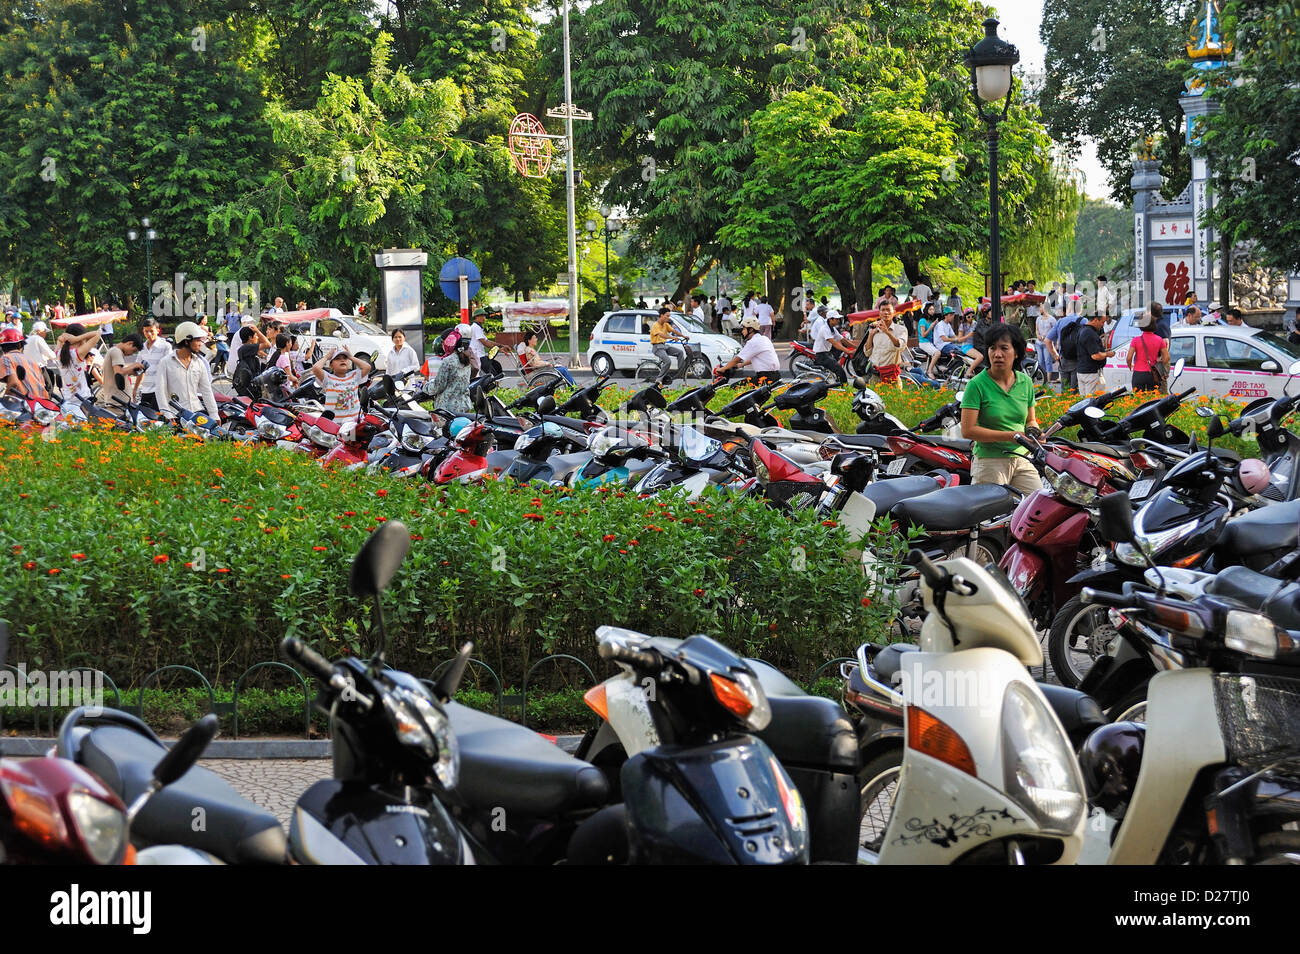 Vietnam - Rows of parked scooters and mopeds lining streets in Hanoi city centre Stock Photo